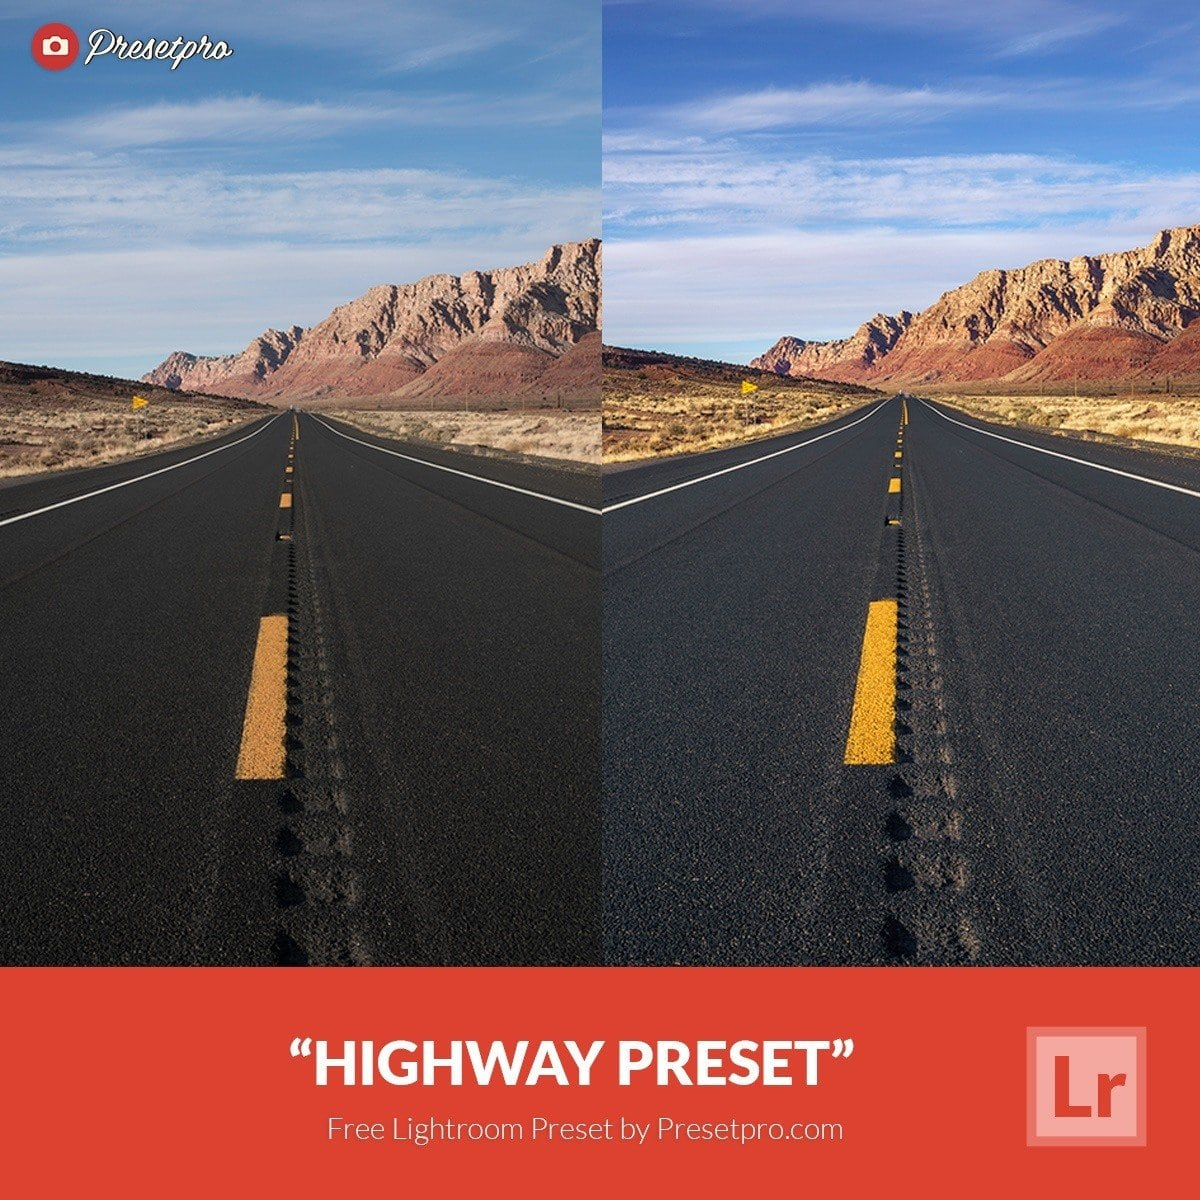 Free-Lightroom-Preset-Highway